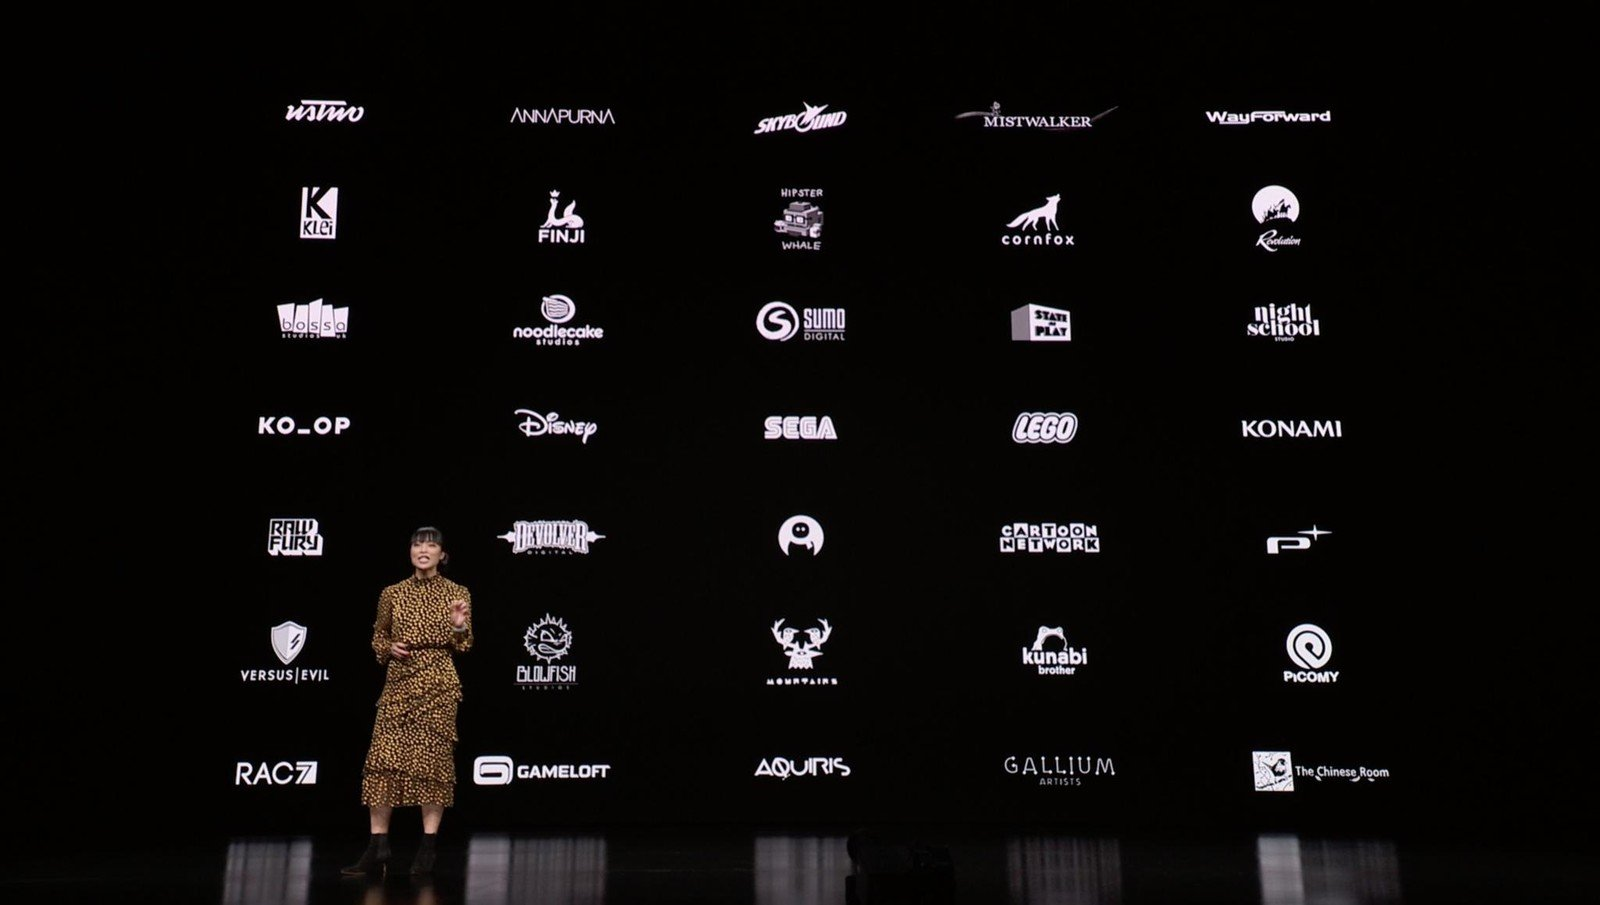 Apple Arcade confirmed games and developers